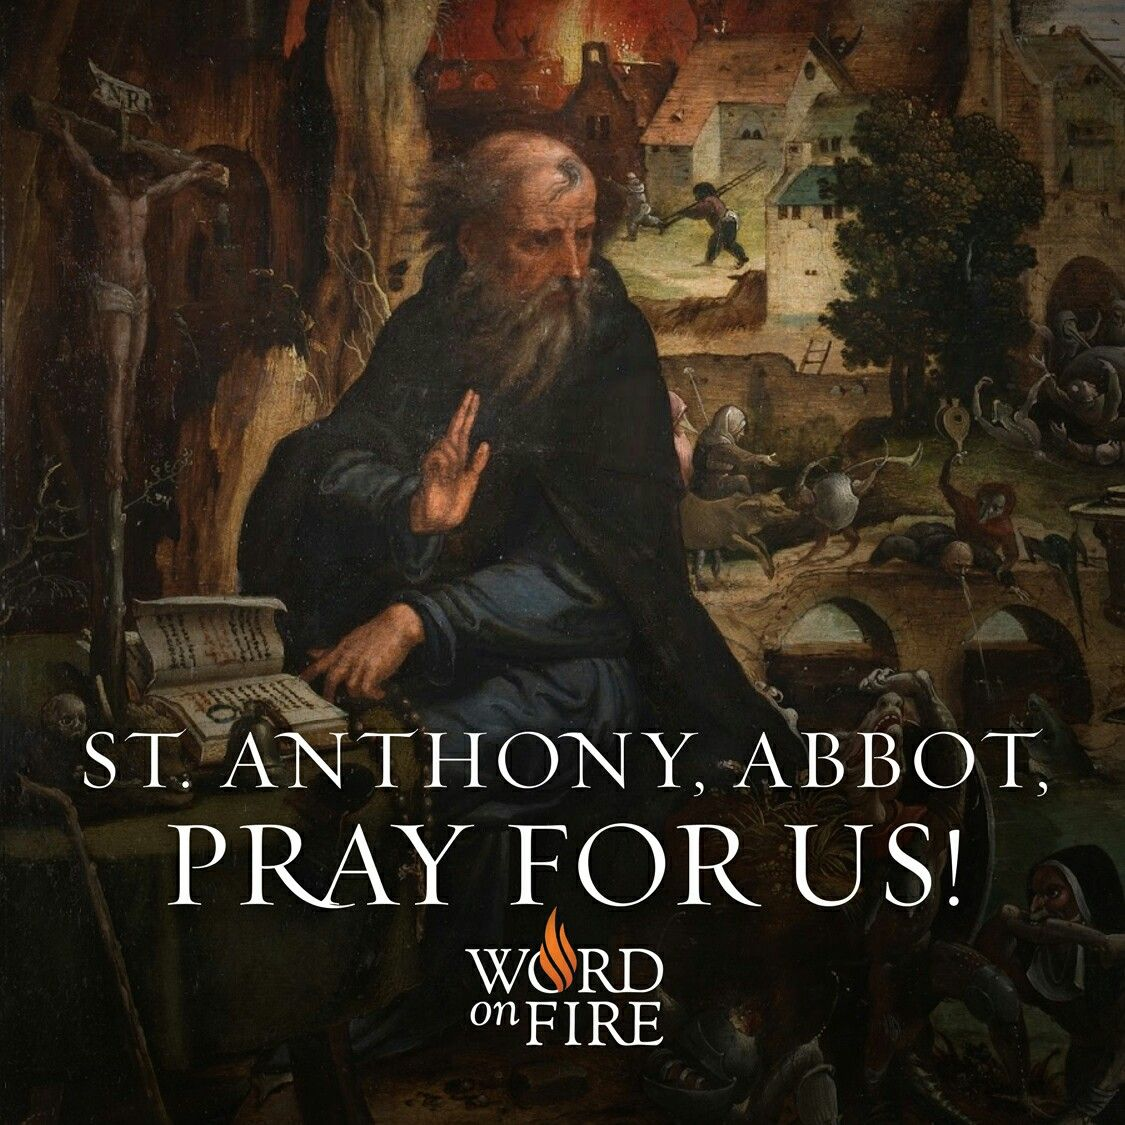 ~St. Anthony the Abbot